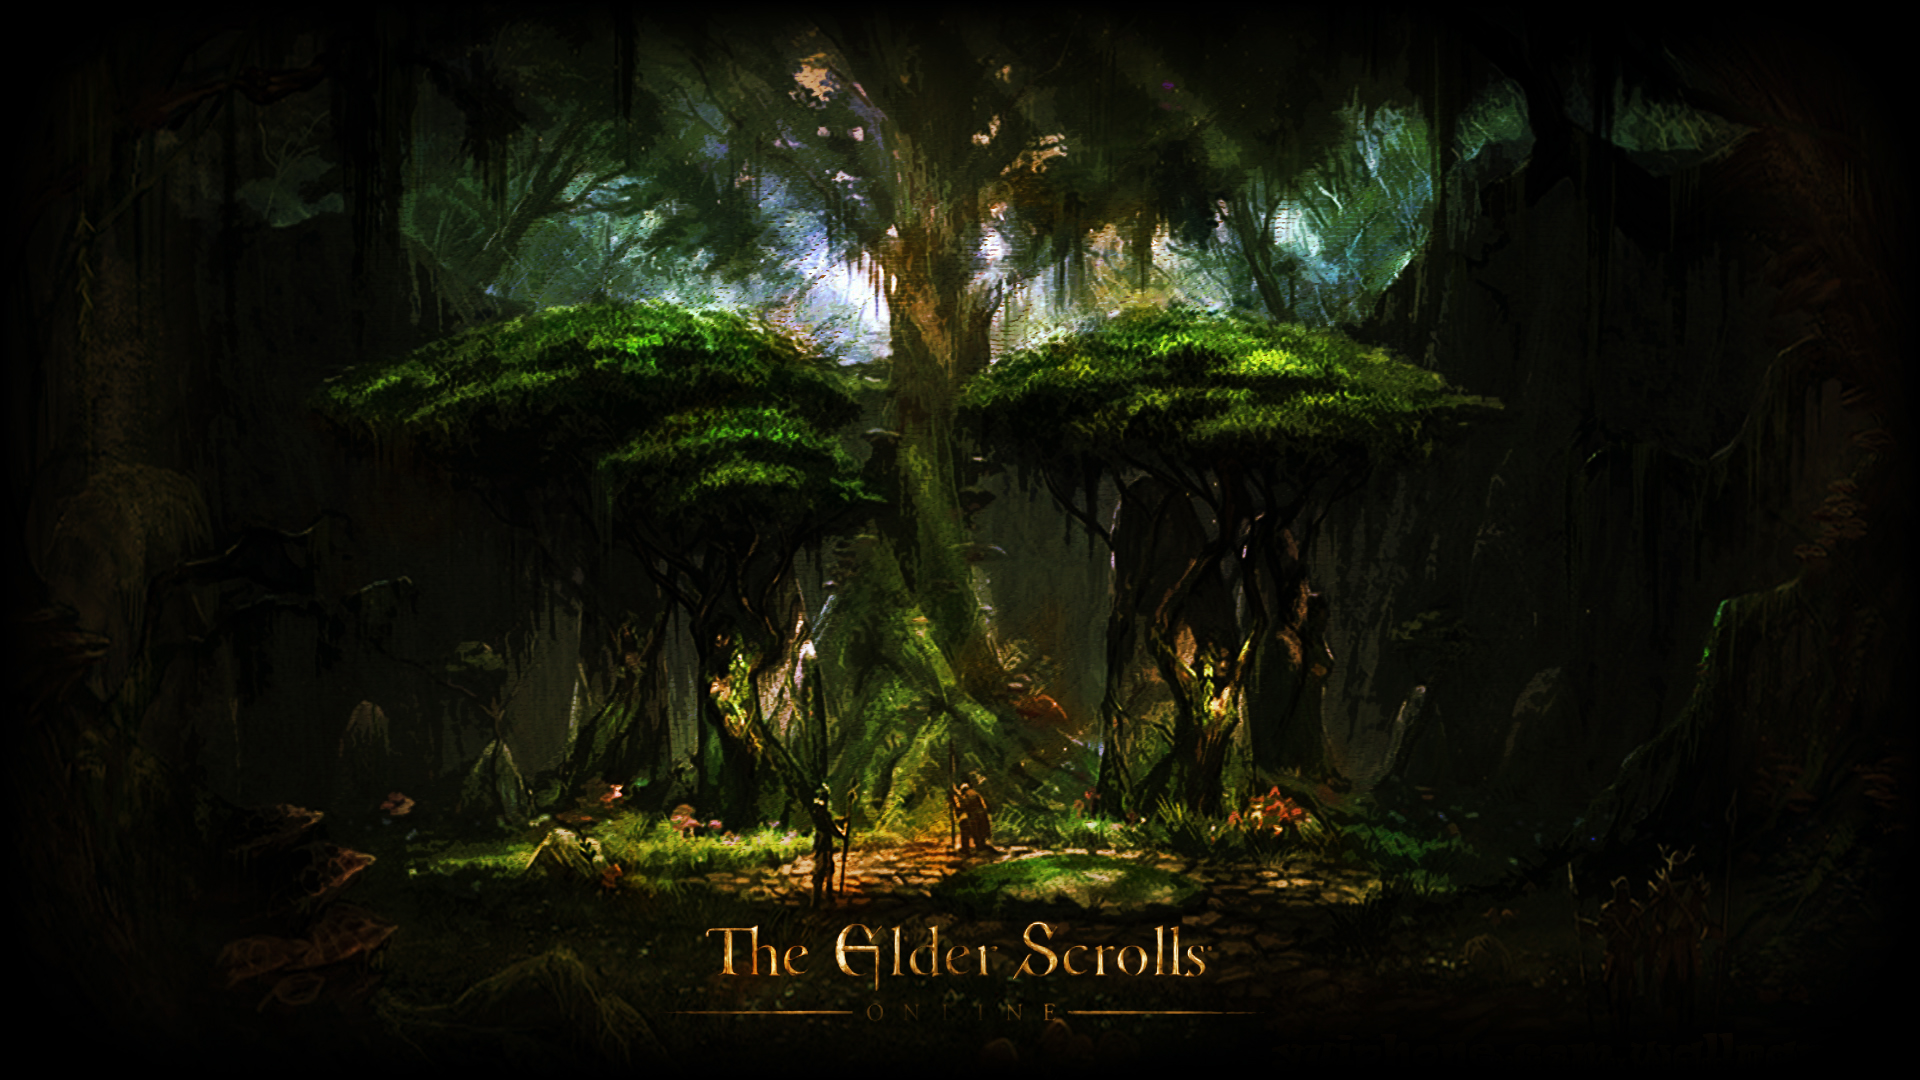 Elder Scrolls 6 Wallpaper: The Elder Scrolls Online Wallpaper 6